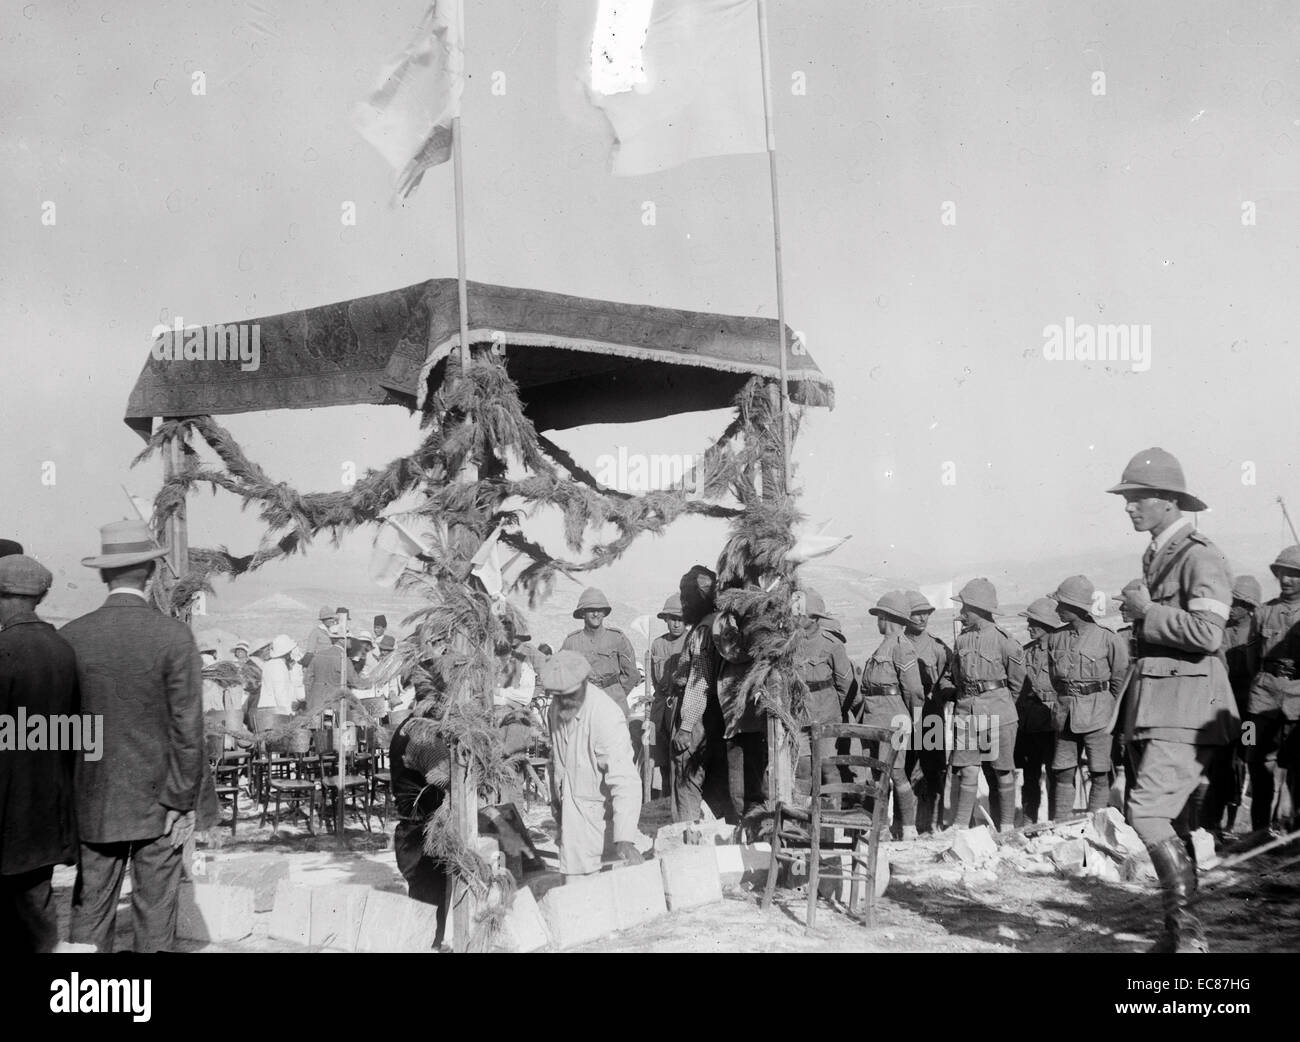 Photograph of Lord Balfour's visit to The Hebrew University, laying the foundation stone of Hebrew University. - Stock Image